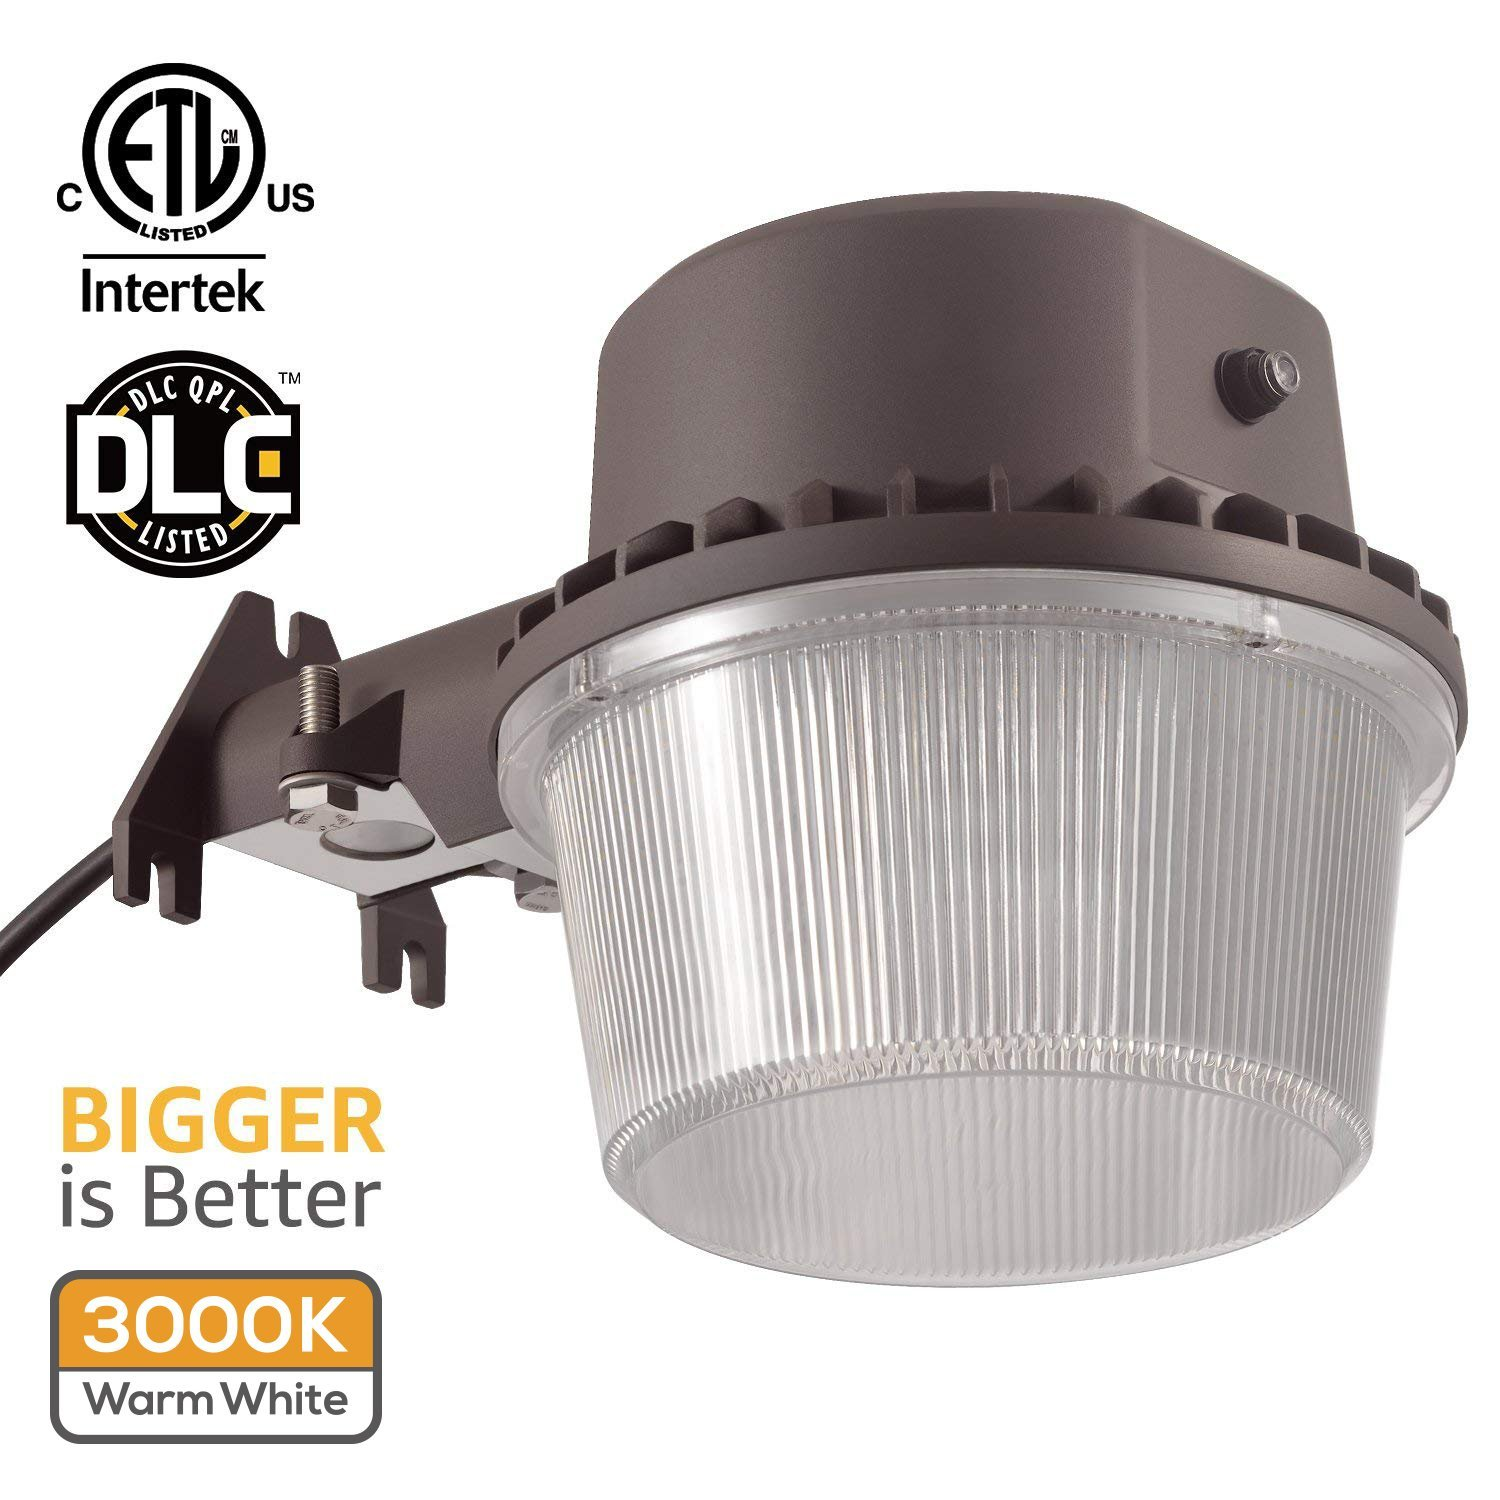 TORCHSTAR Dusk-to-dawn LED Outdoor Barn Light (Photocell Included), 35W (250W Equiv.), 3000K Warm White Floodlight, DLC & ETL-listed Yard Light for Area Lighting, 5-year Warranty, Bronze by TORCHSTAR